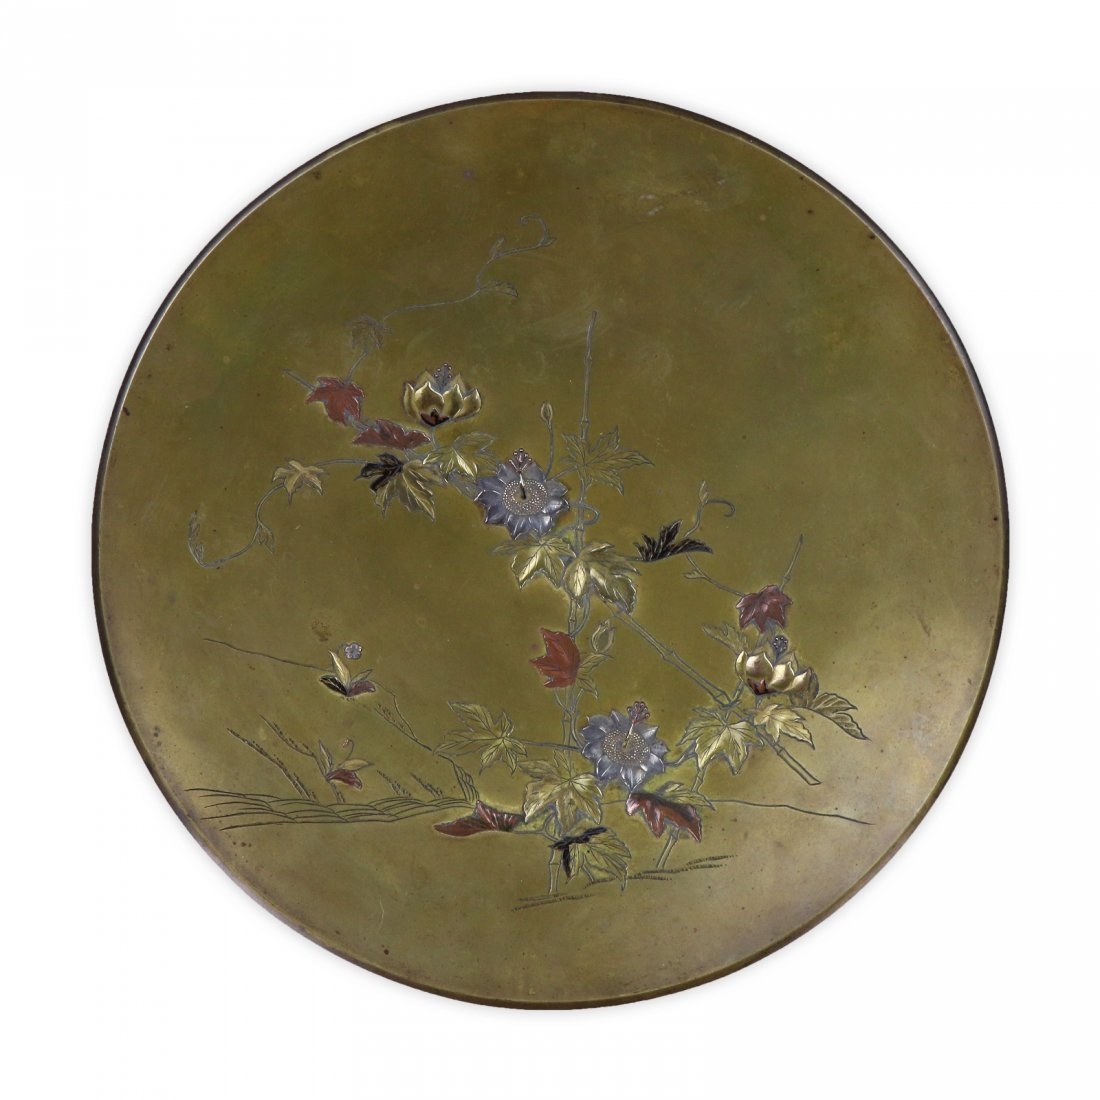 A JAPANESE ANTIQUE GOLD & SILVER INLAID SHALLOW DISH